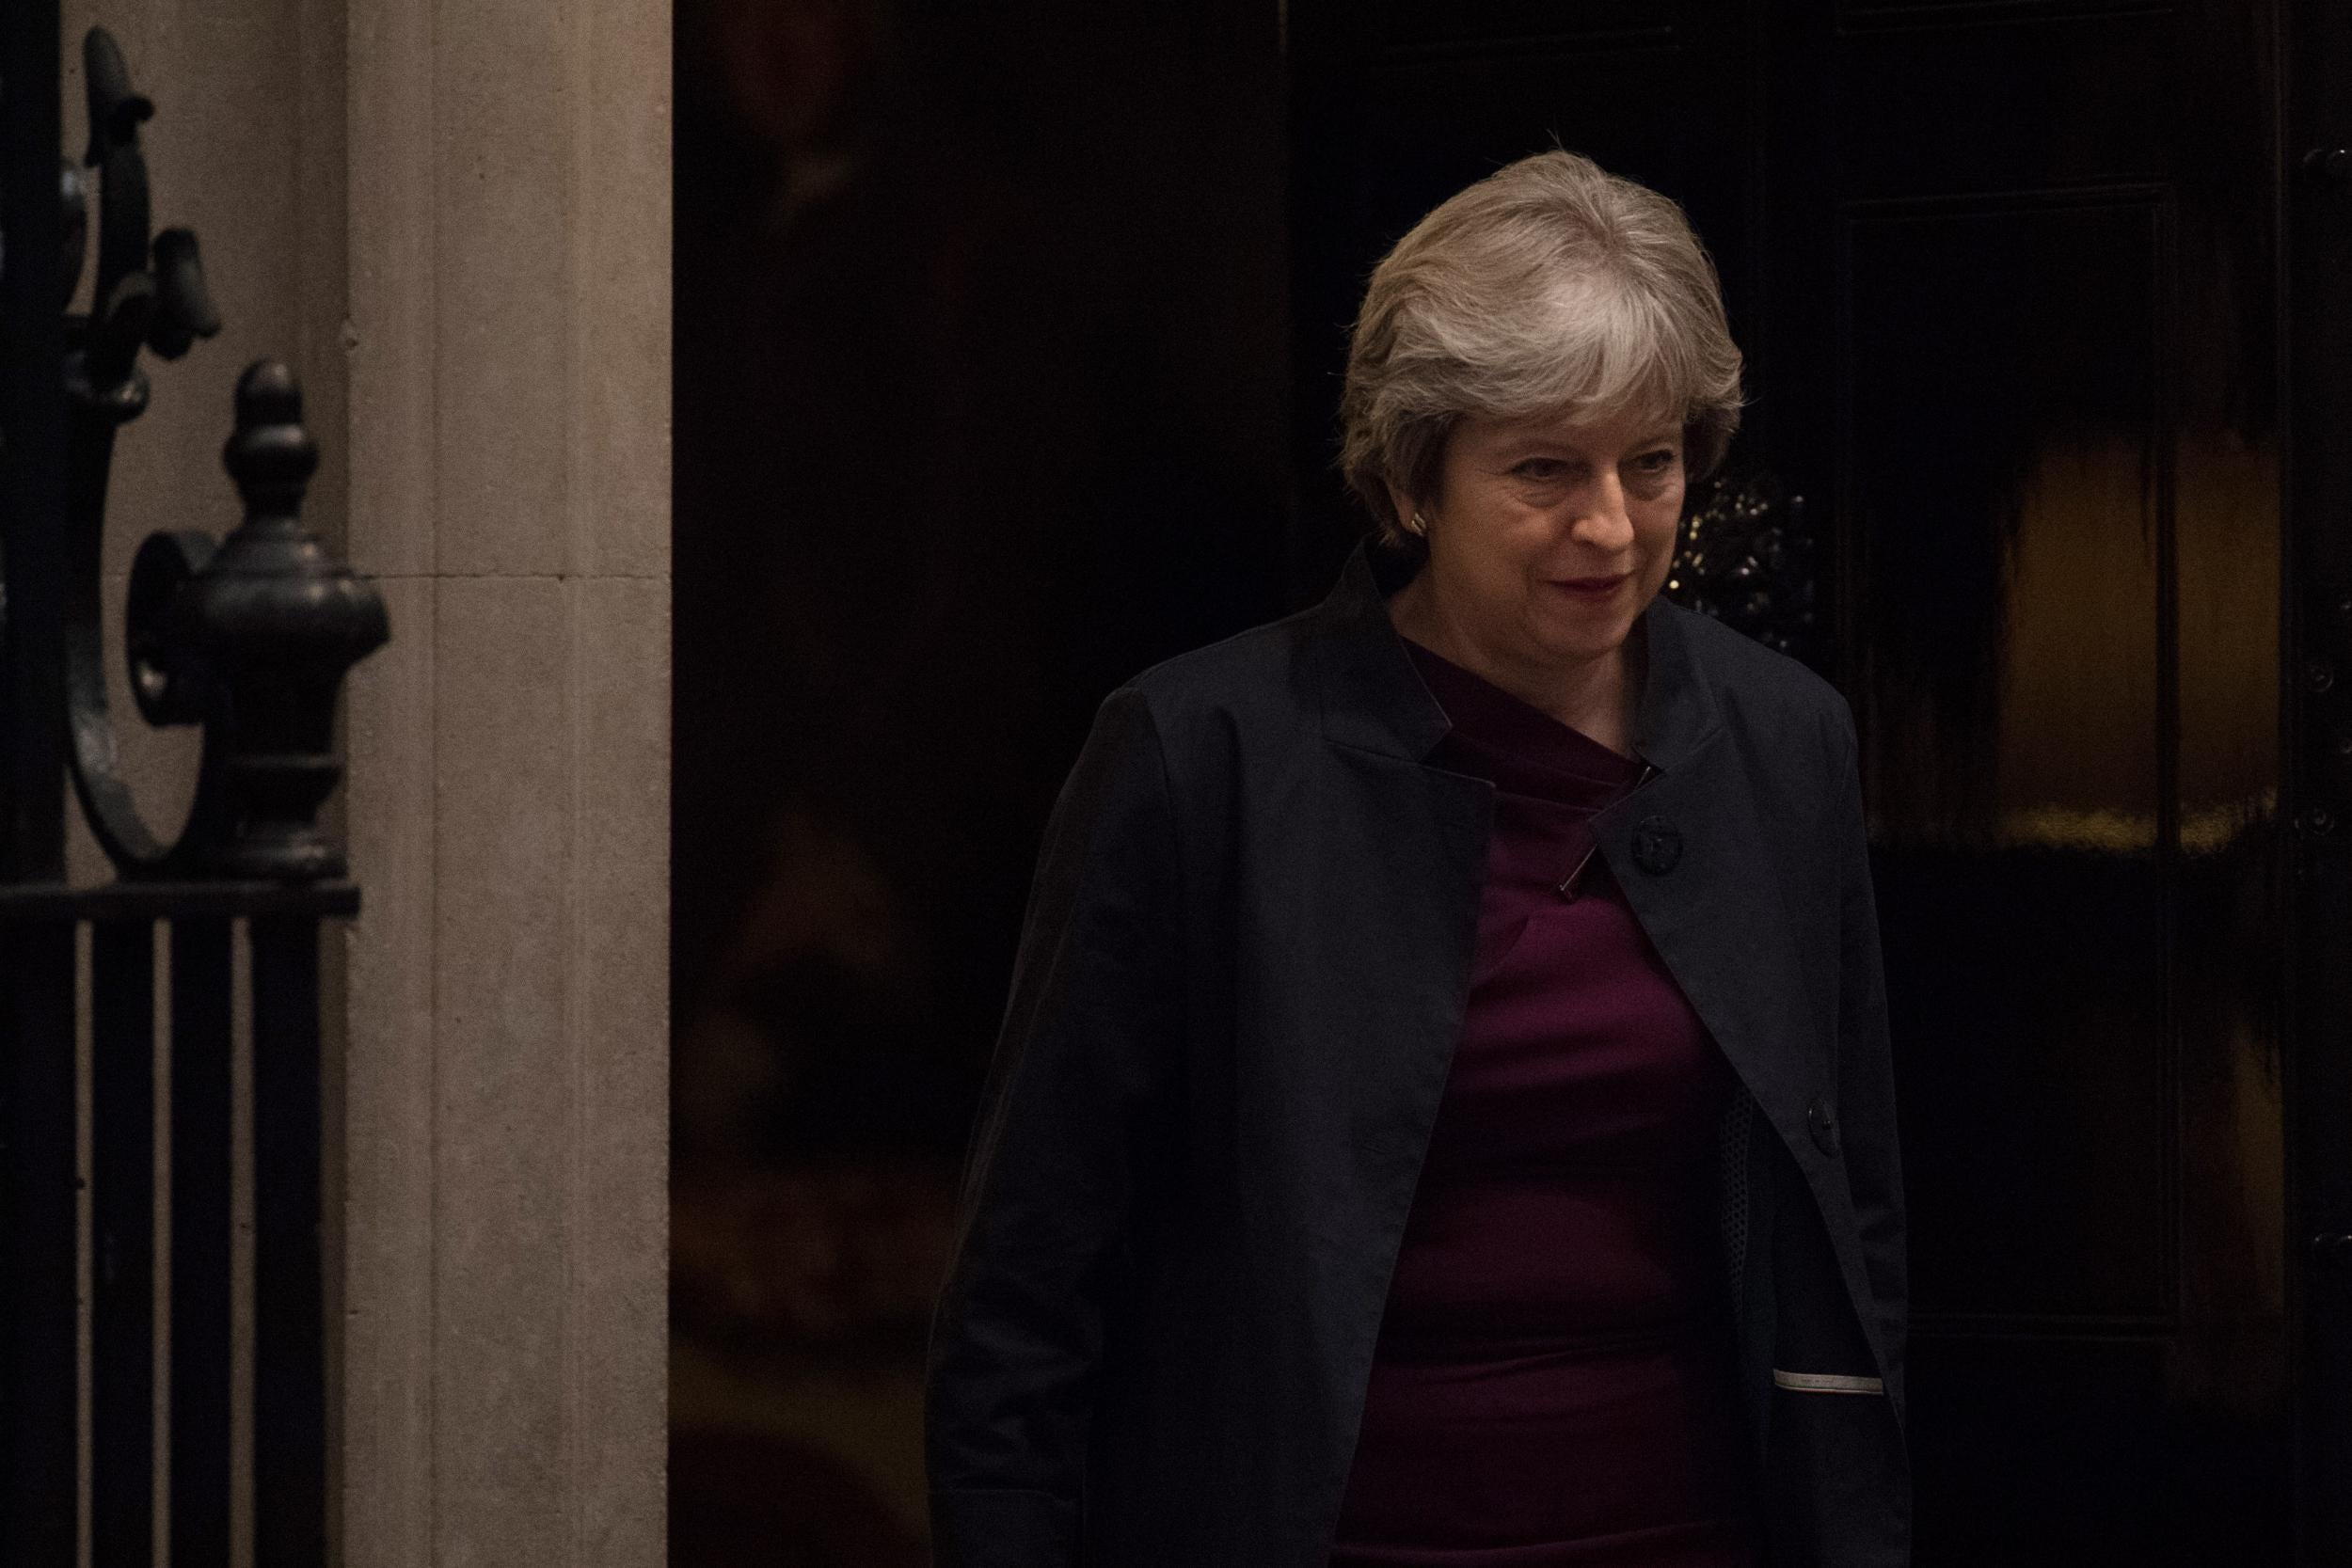 A Brexit no deal would hit millions of British families, major new study warns